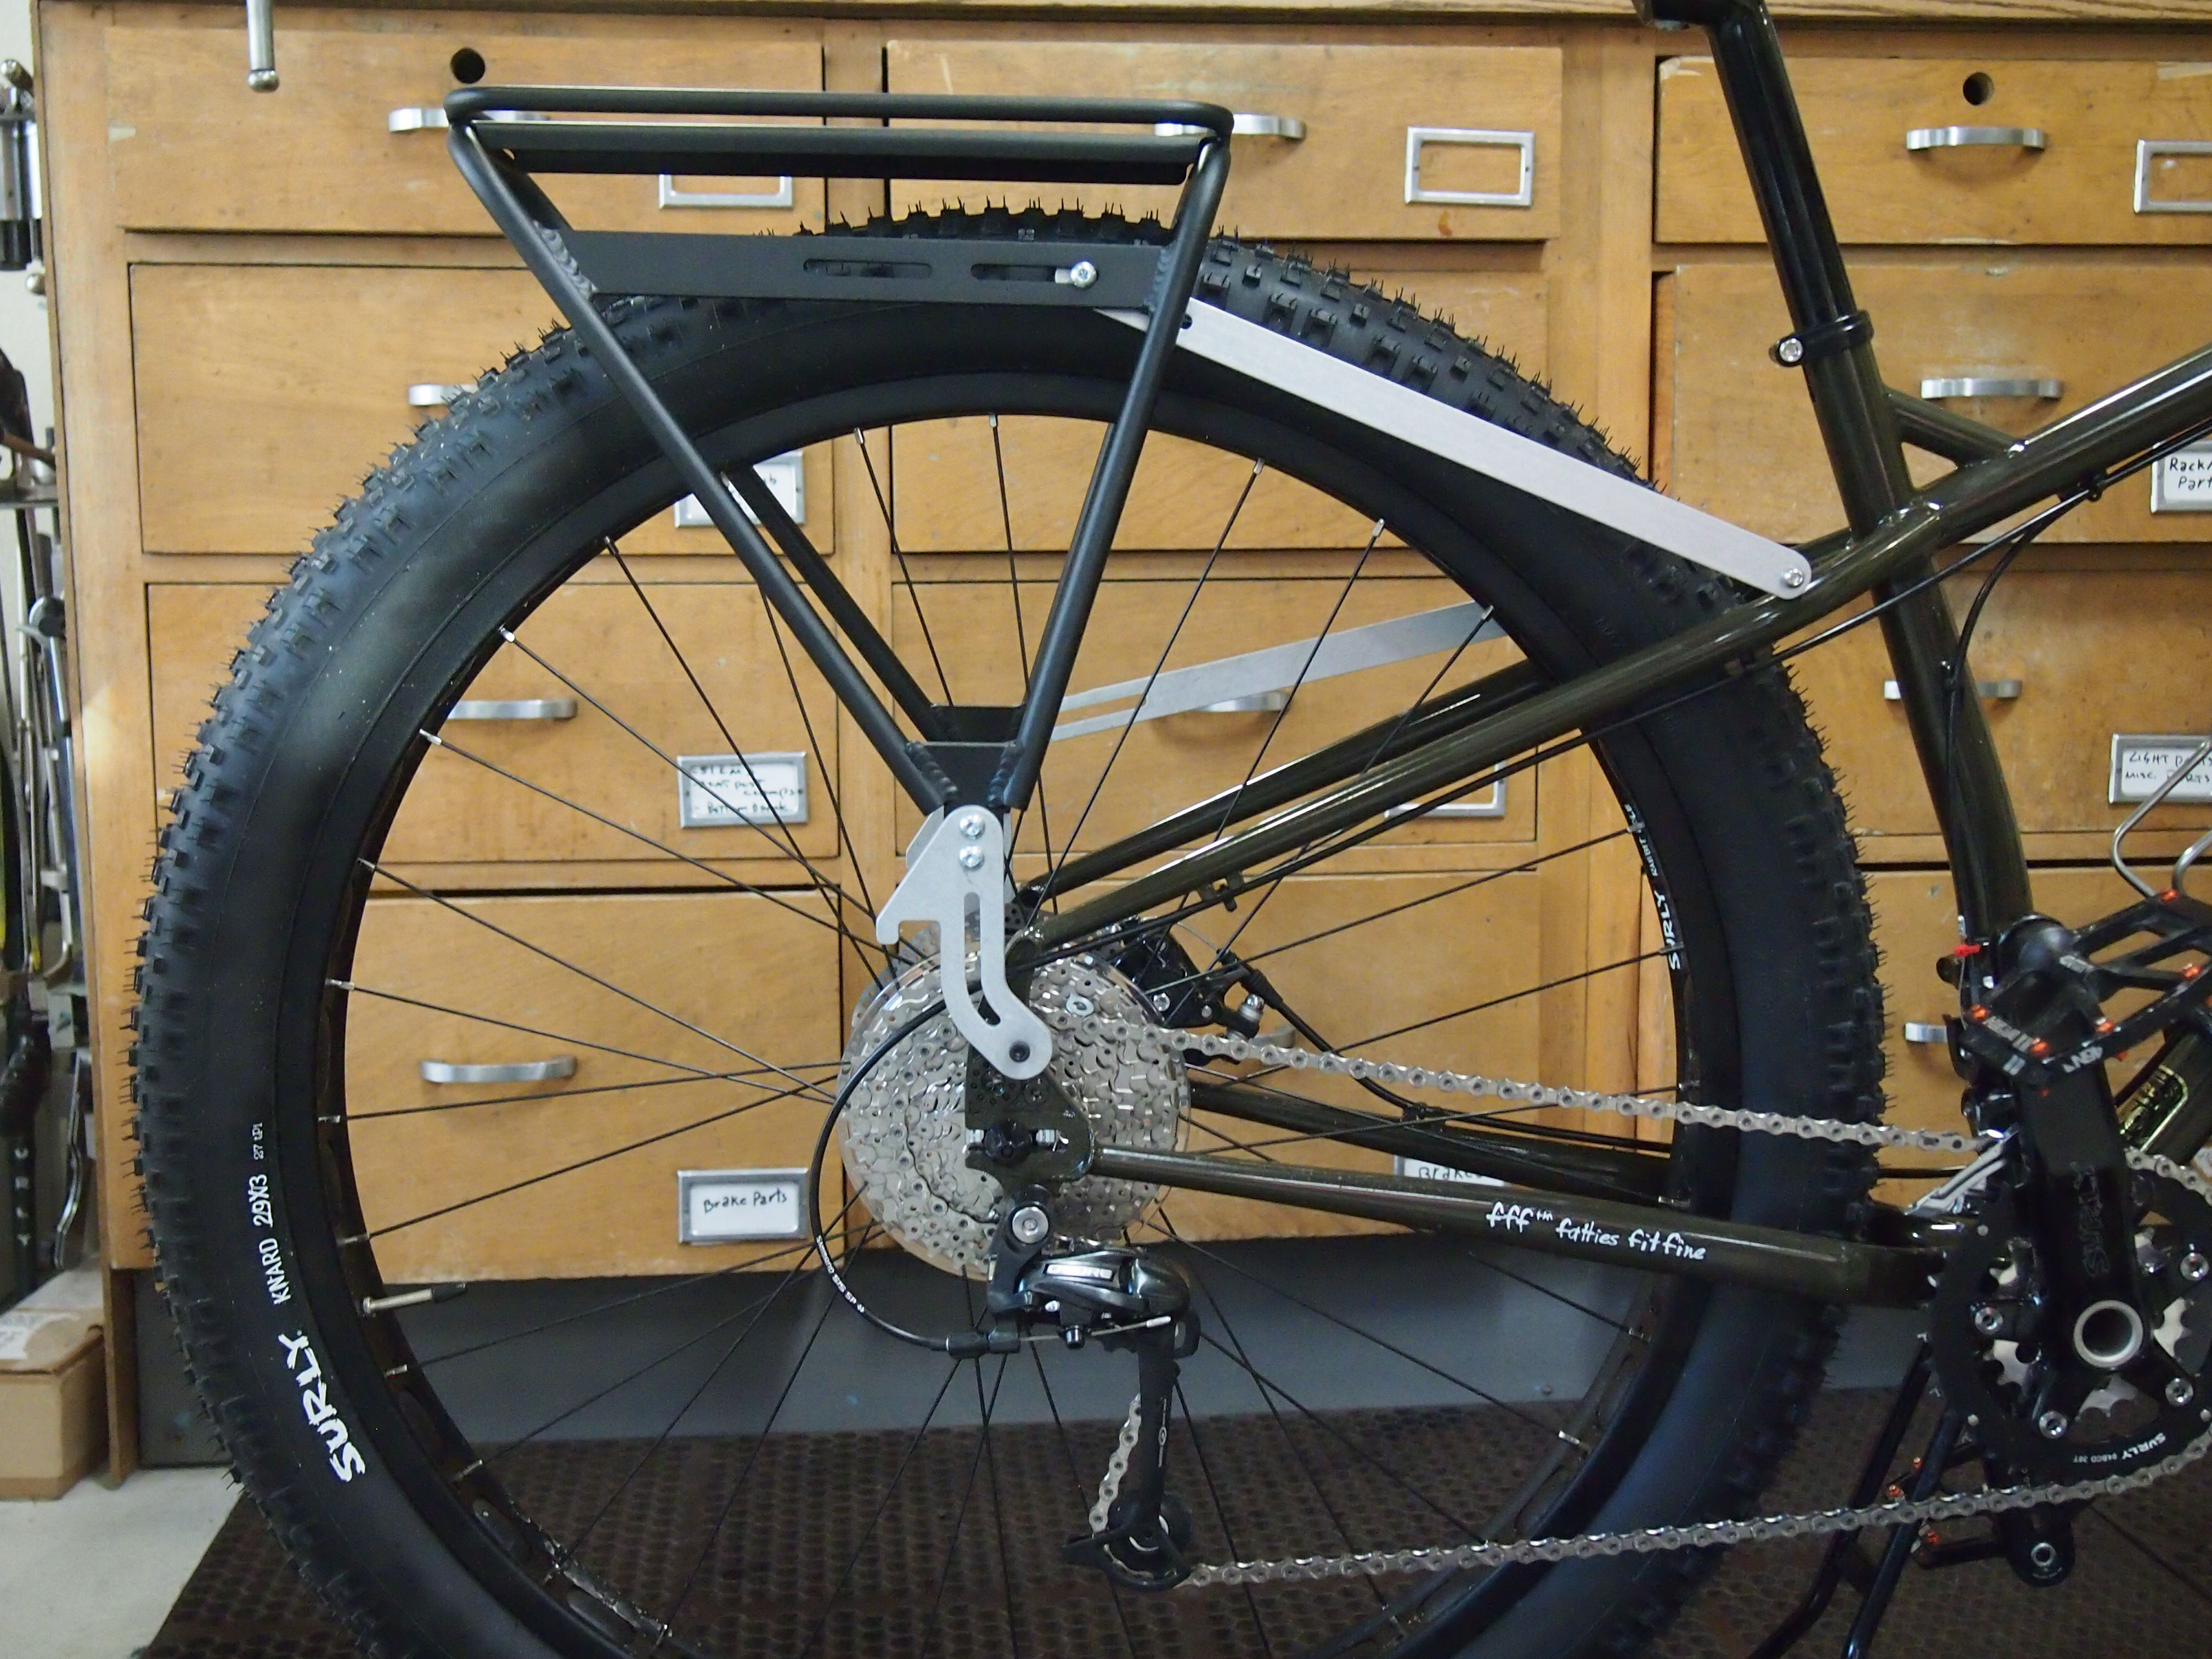 A Rear Rack On The Surly Ecr